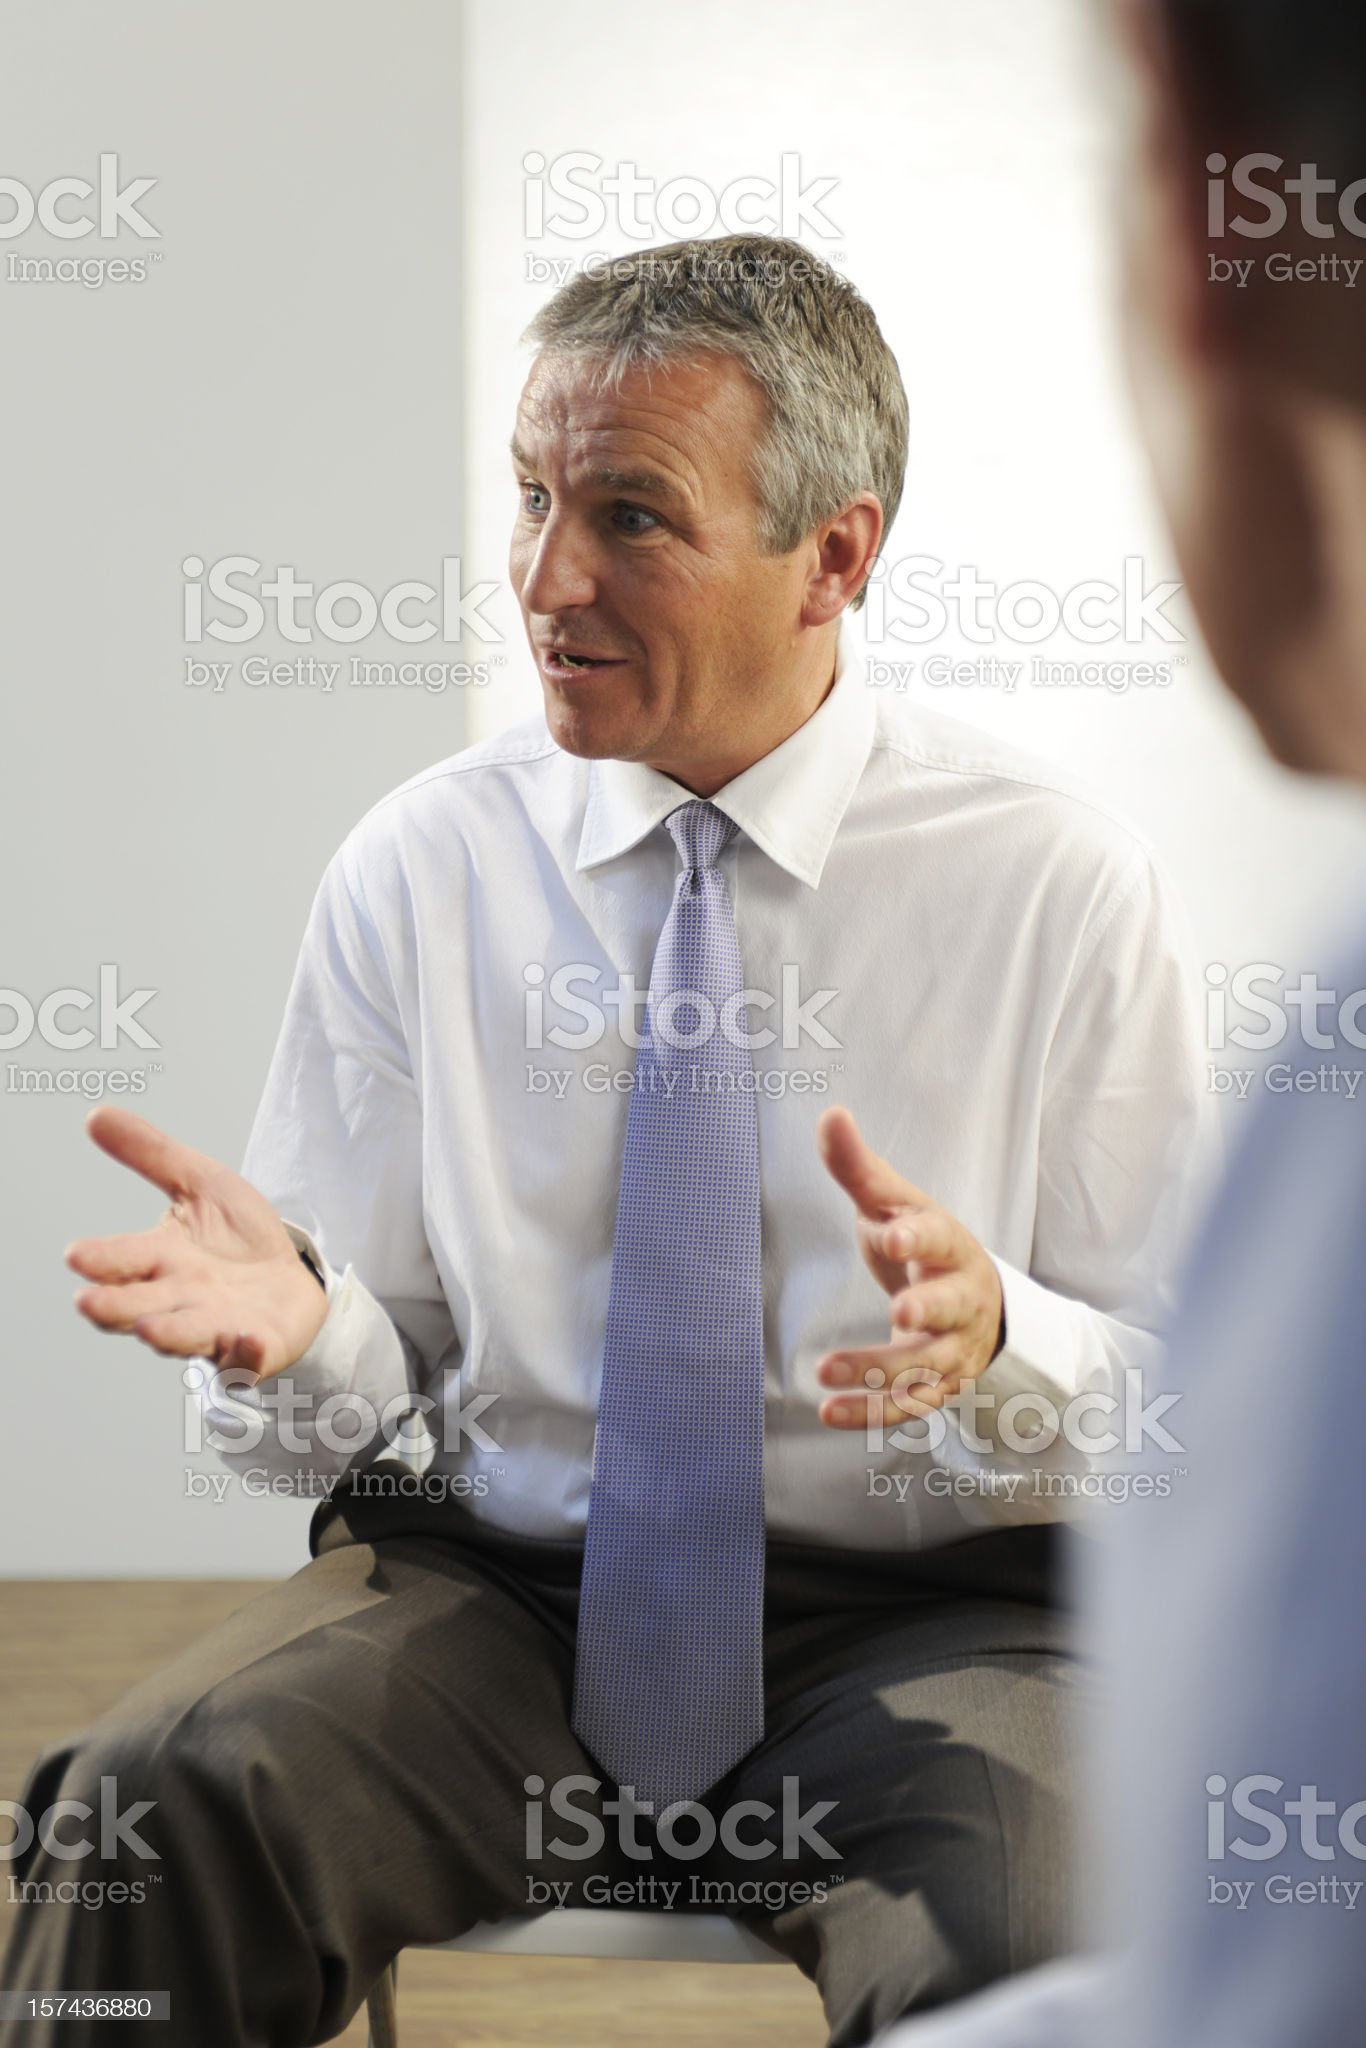 senior business men royalty-free stock photo